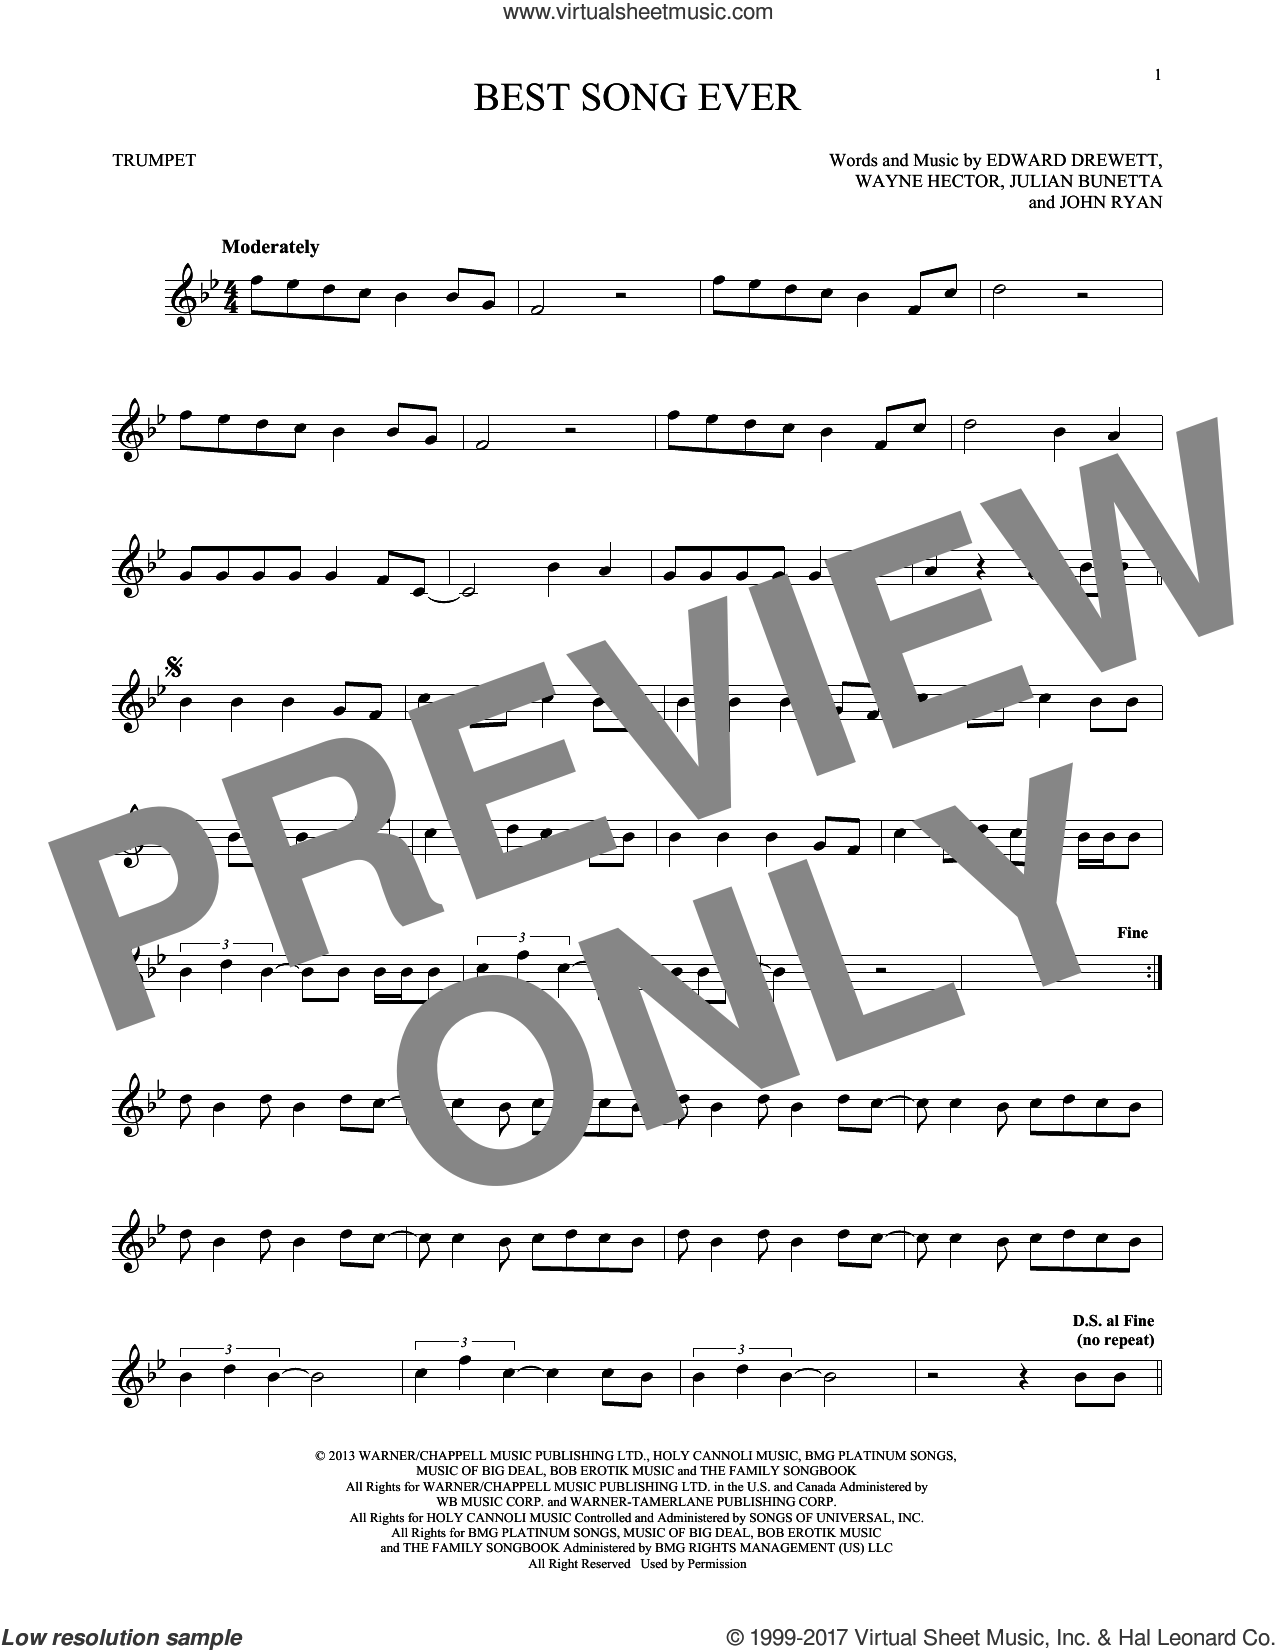 Best Song Ever sheet music for trumpet solo by One Direction, Edward Drewett, John Ryan, Julian Bunetta and Wayne Hector, intermediate skill level